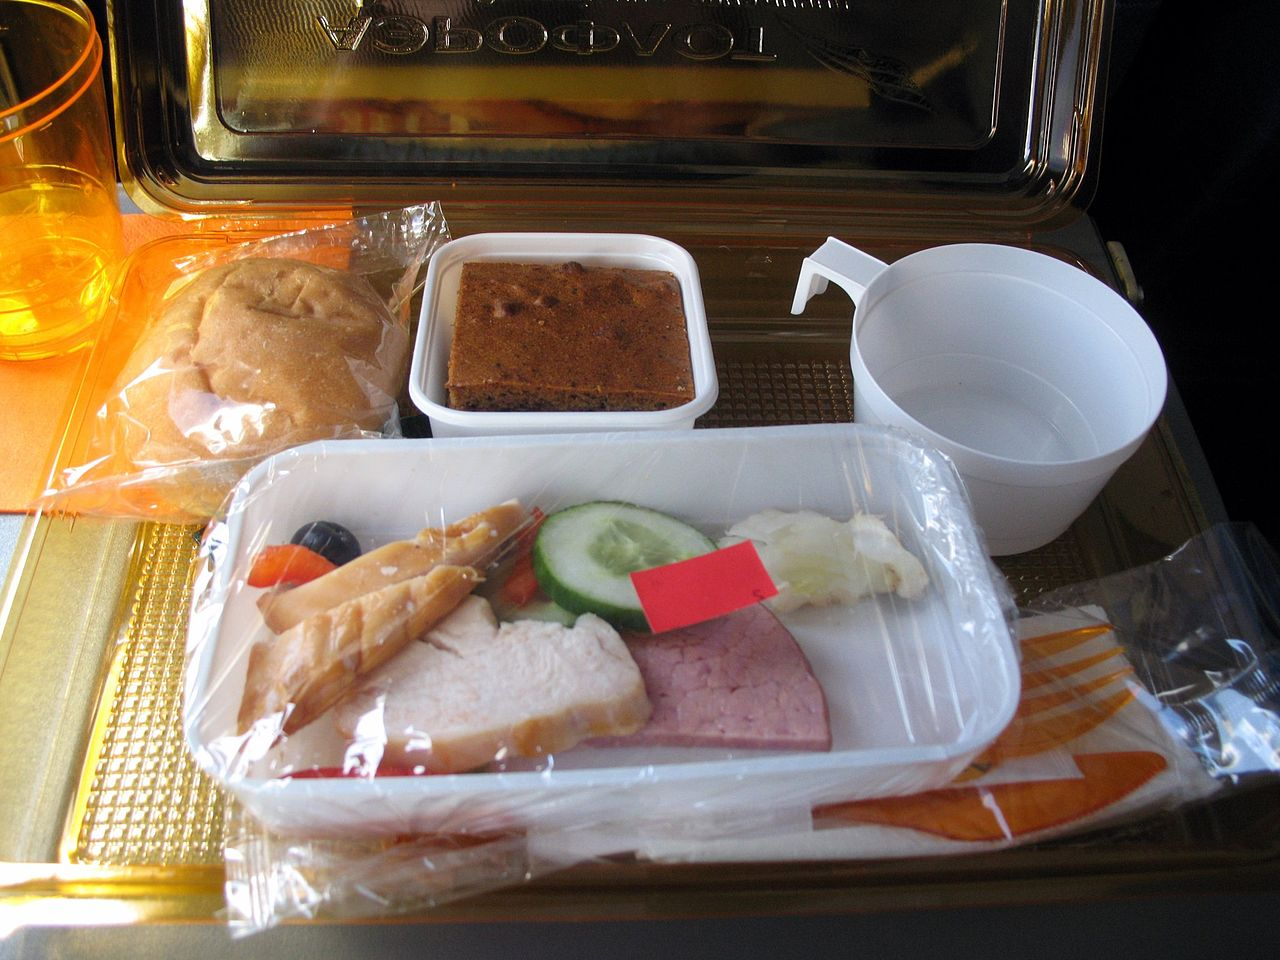 World's best airlines for in-flight meals 2016 – Foxcrawl